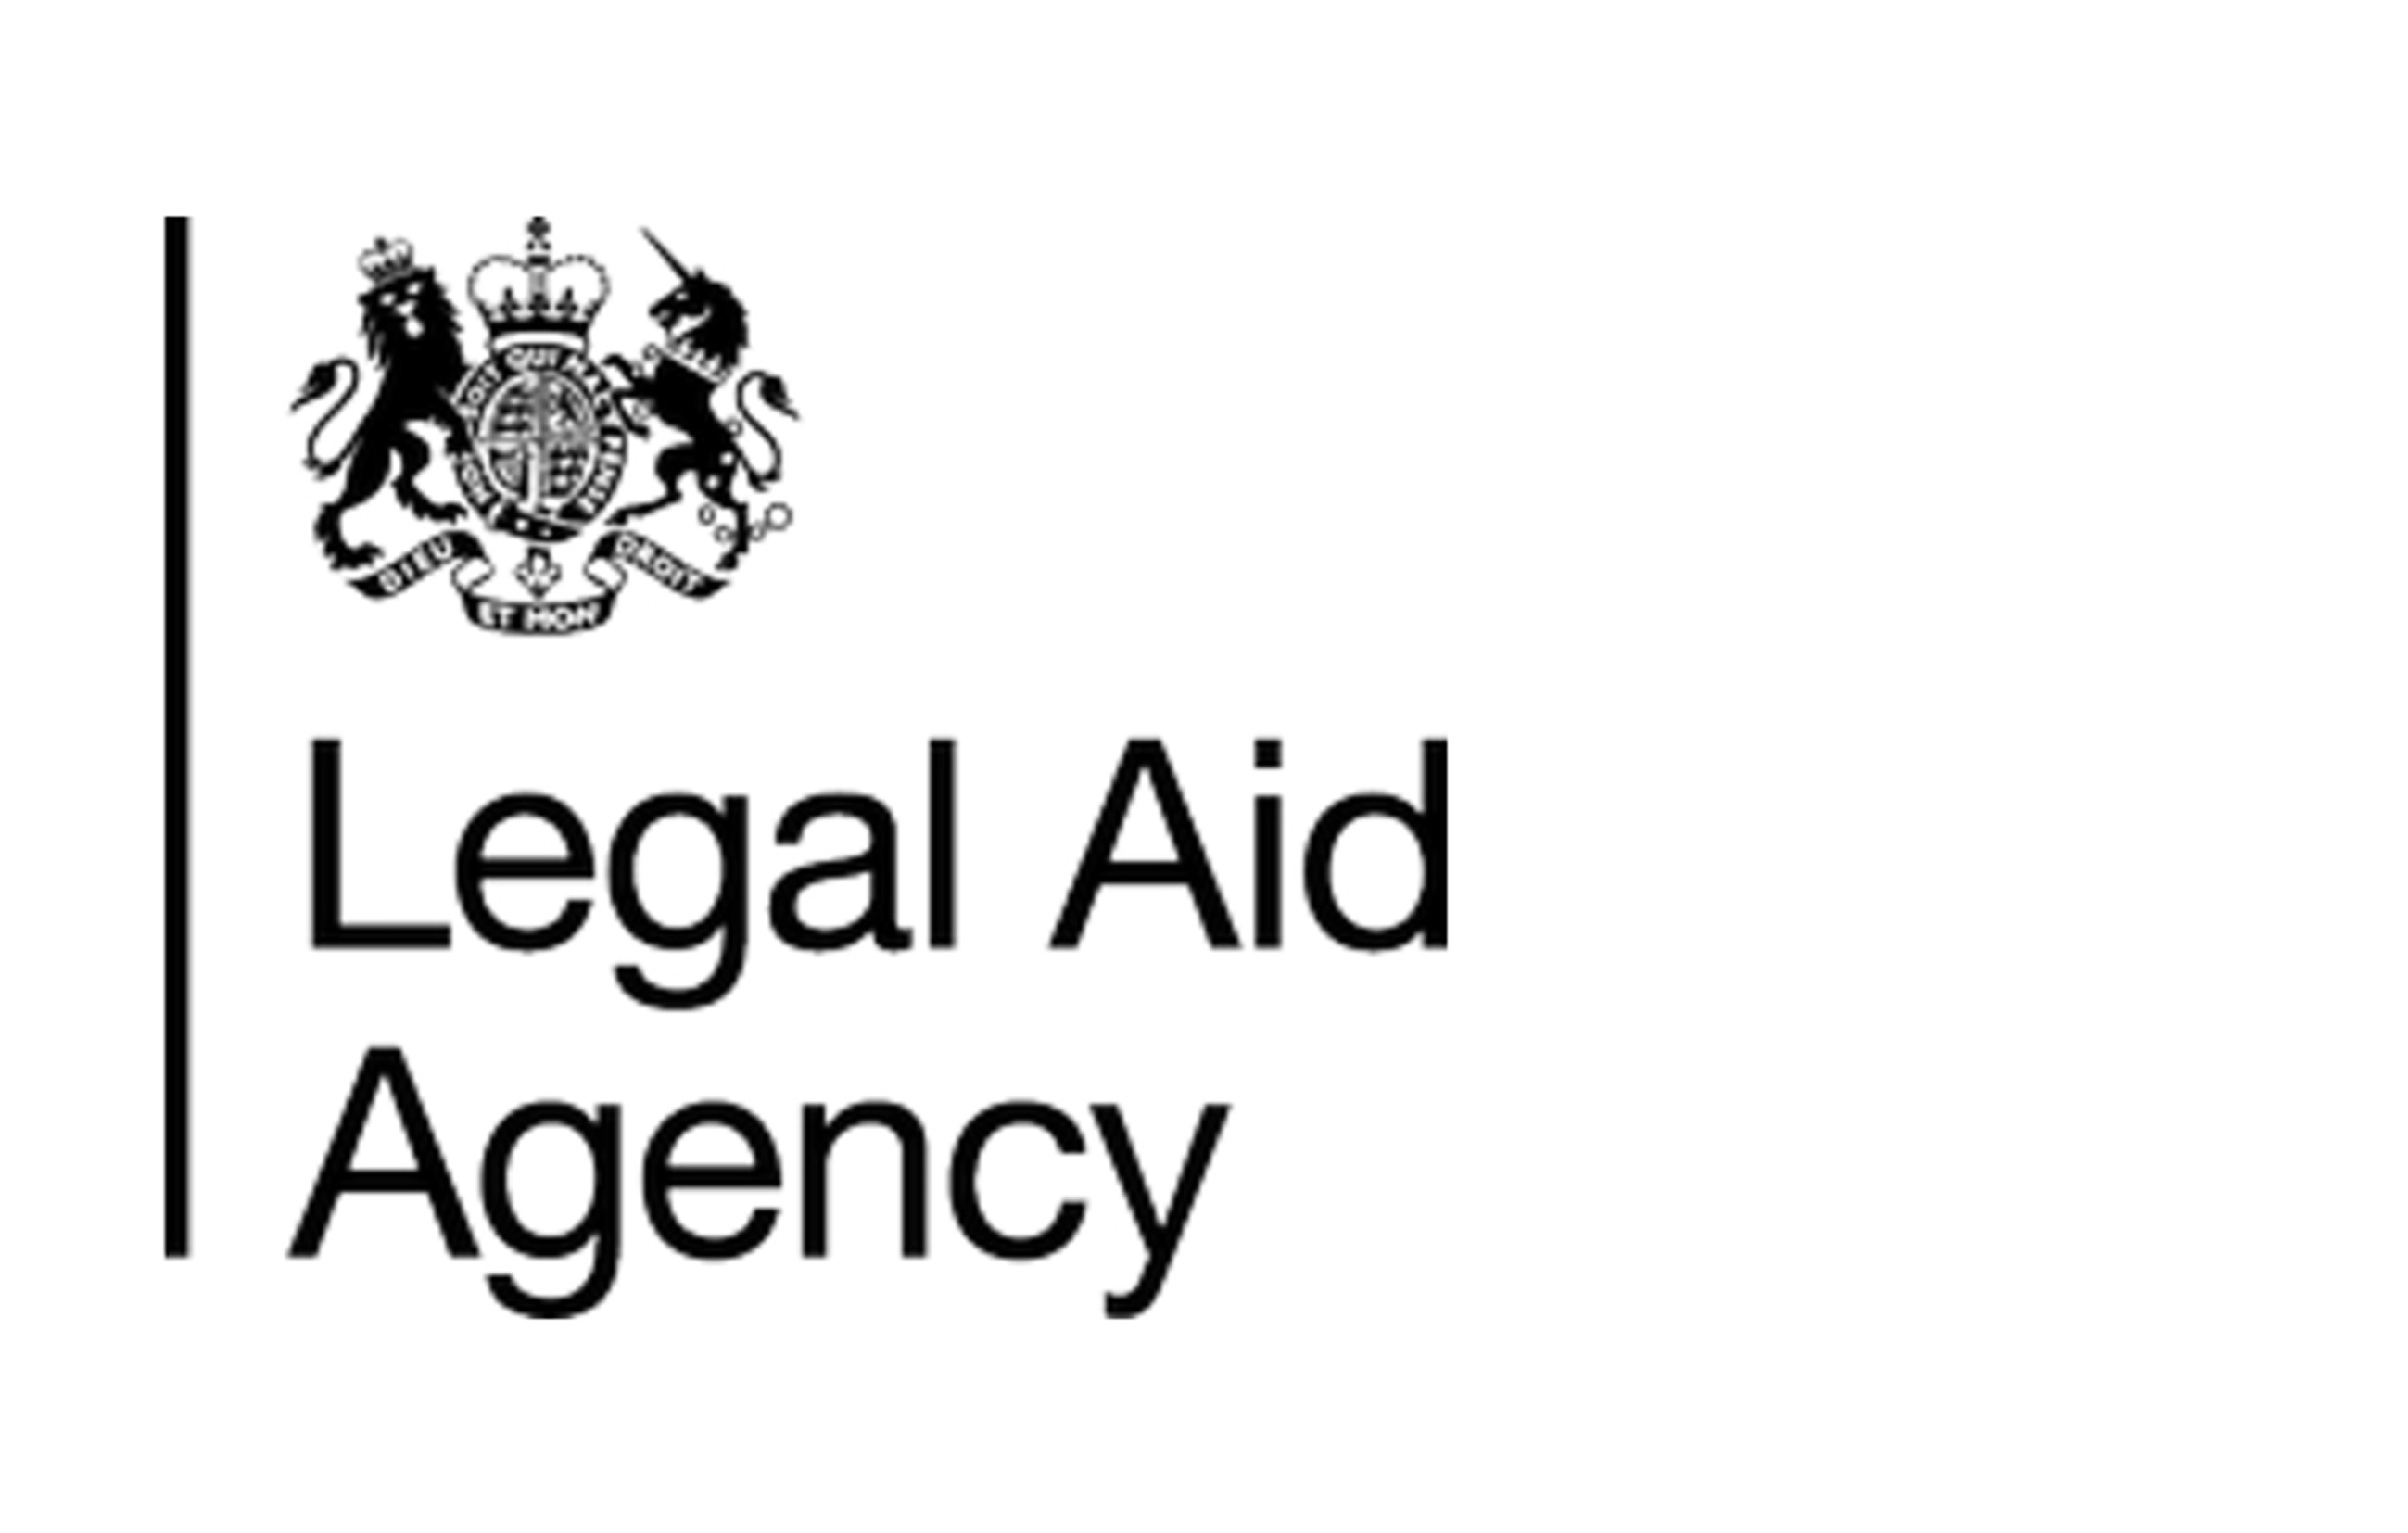 Legal Aid Agency guidance on a model approach to civil billing